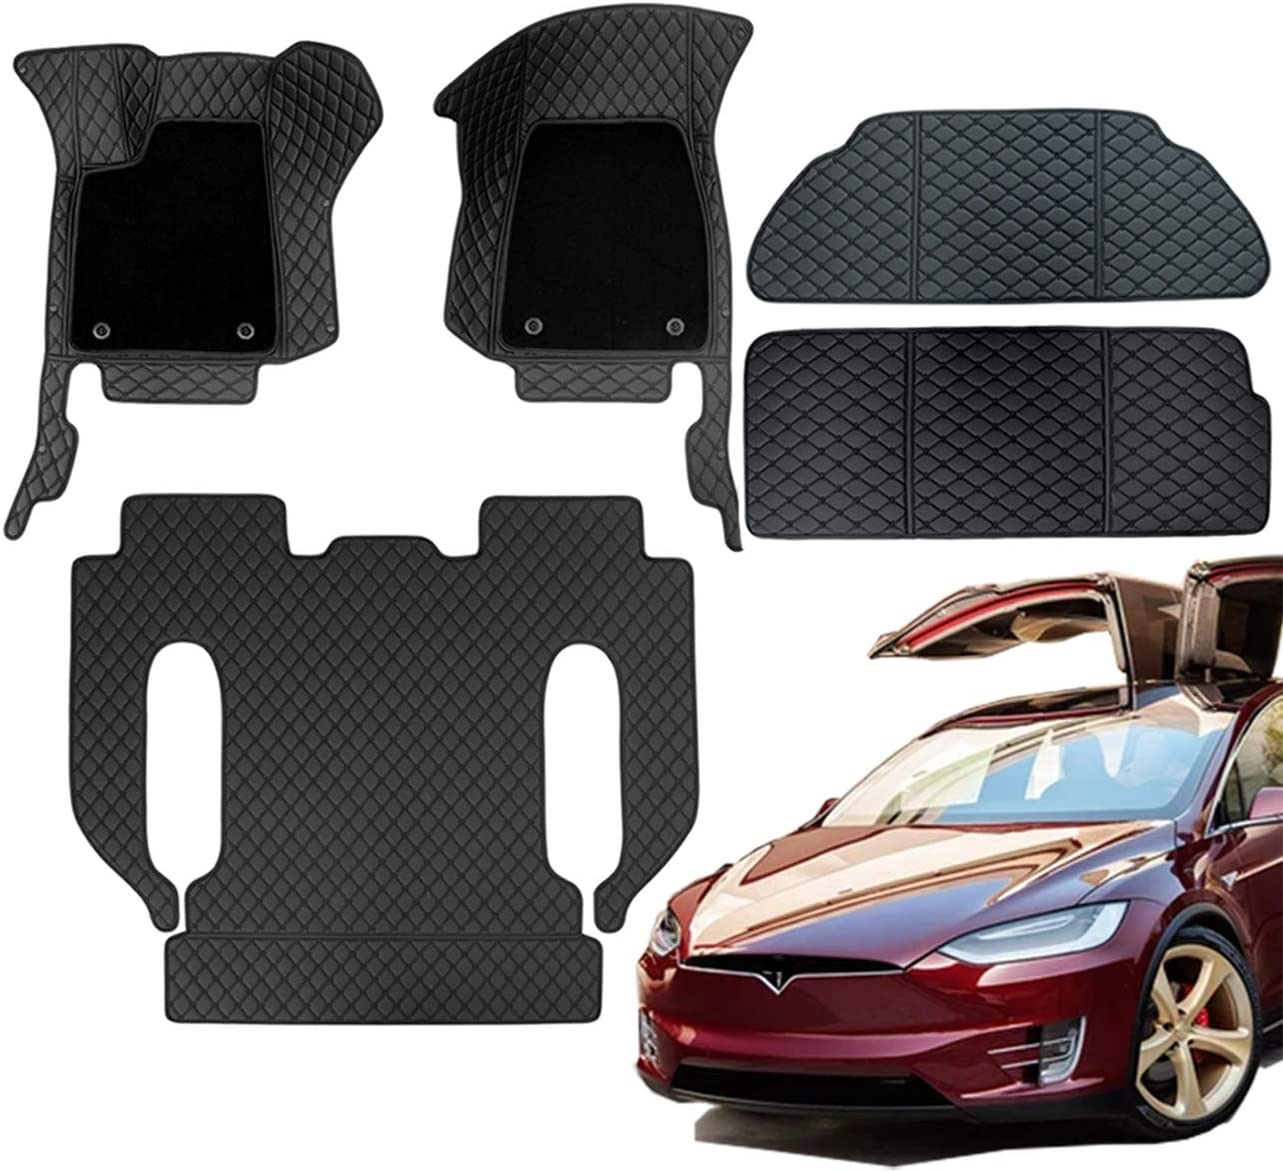 Lowest Baltimore Mall price challenge Topfit Model X 6 Seat Included All-Weather Floor Mats Front